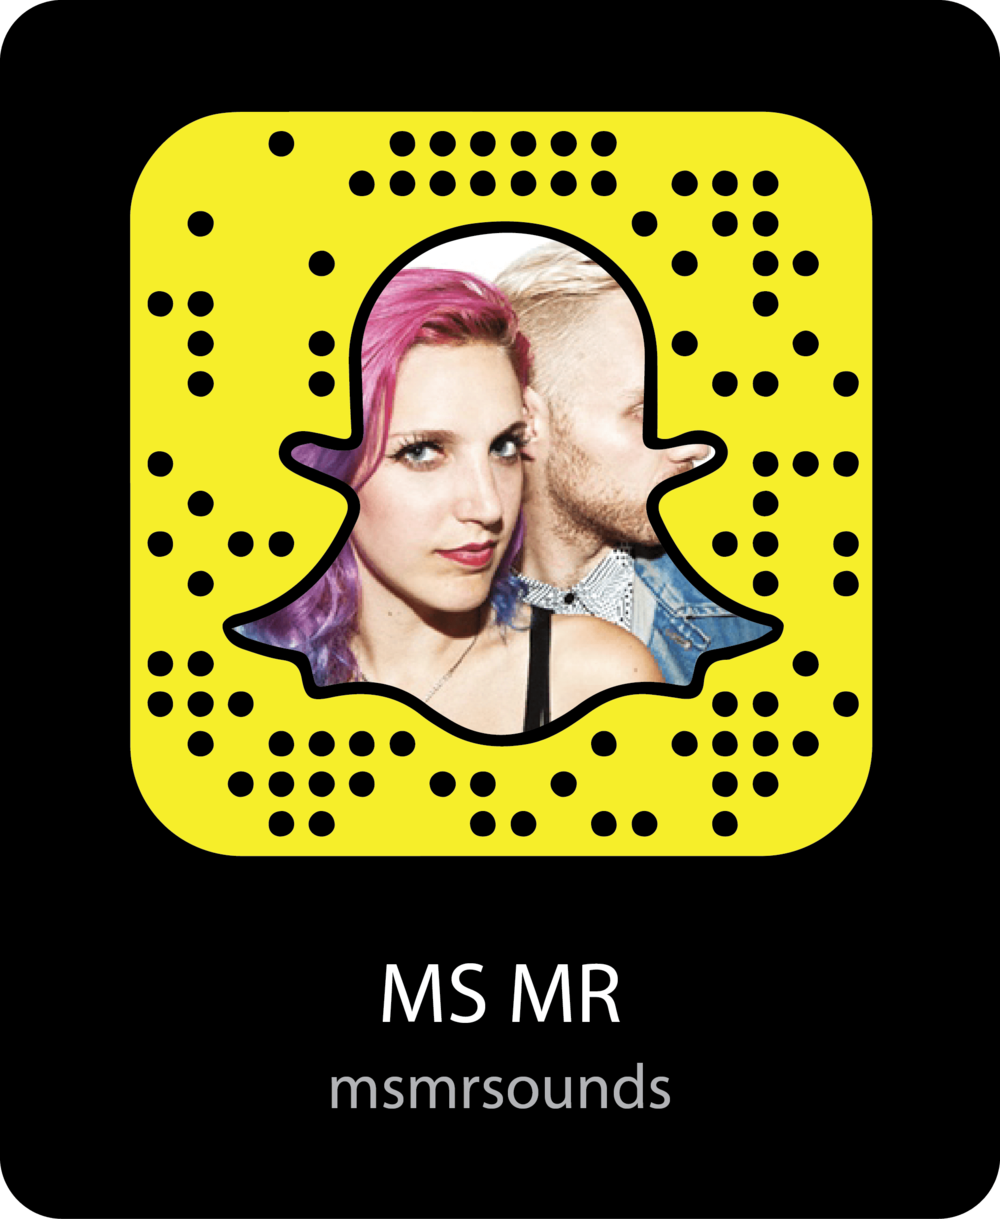 Musicians 2 — Snap.Codes: Snapchat Codes and Usernames for Celebrities & More